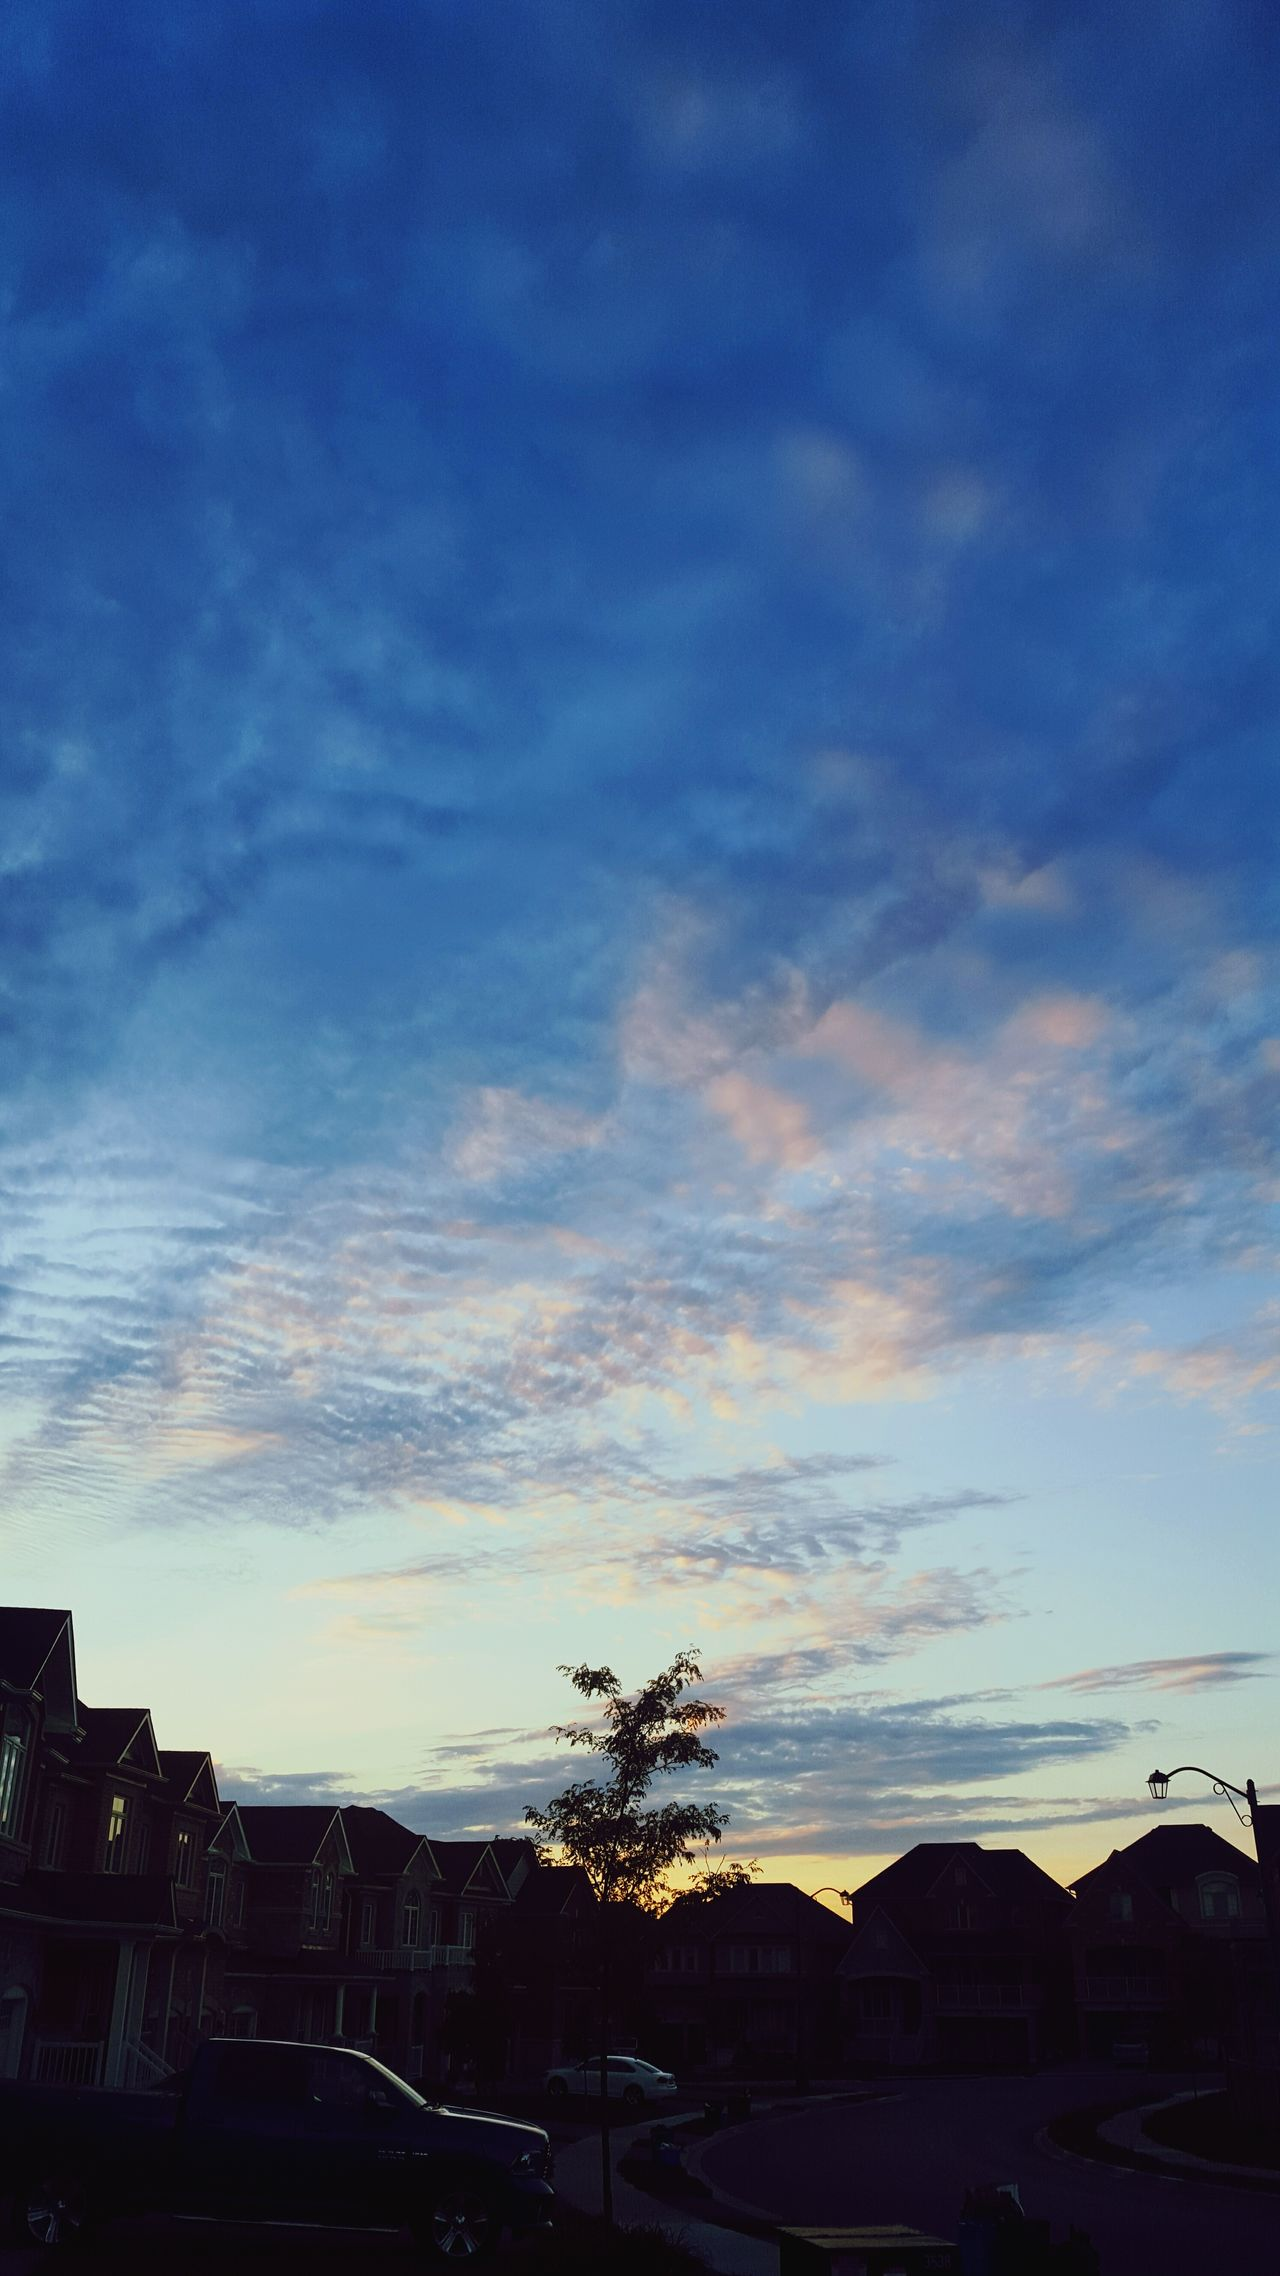 Samsungphotography Samsung Galaxy S6 S6 Quality Android Android Photography Android Quality Sunset Clouds Neibourhood Houses Cars Contrast Lovely Rippled Ripple Effect